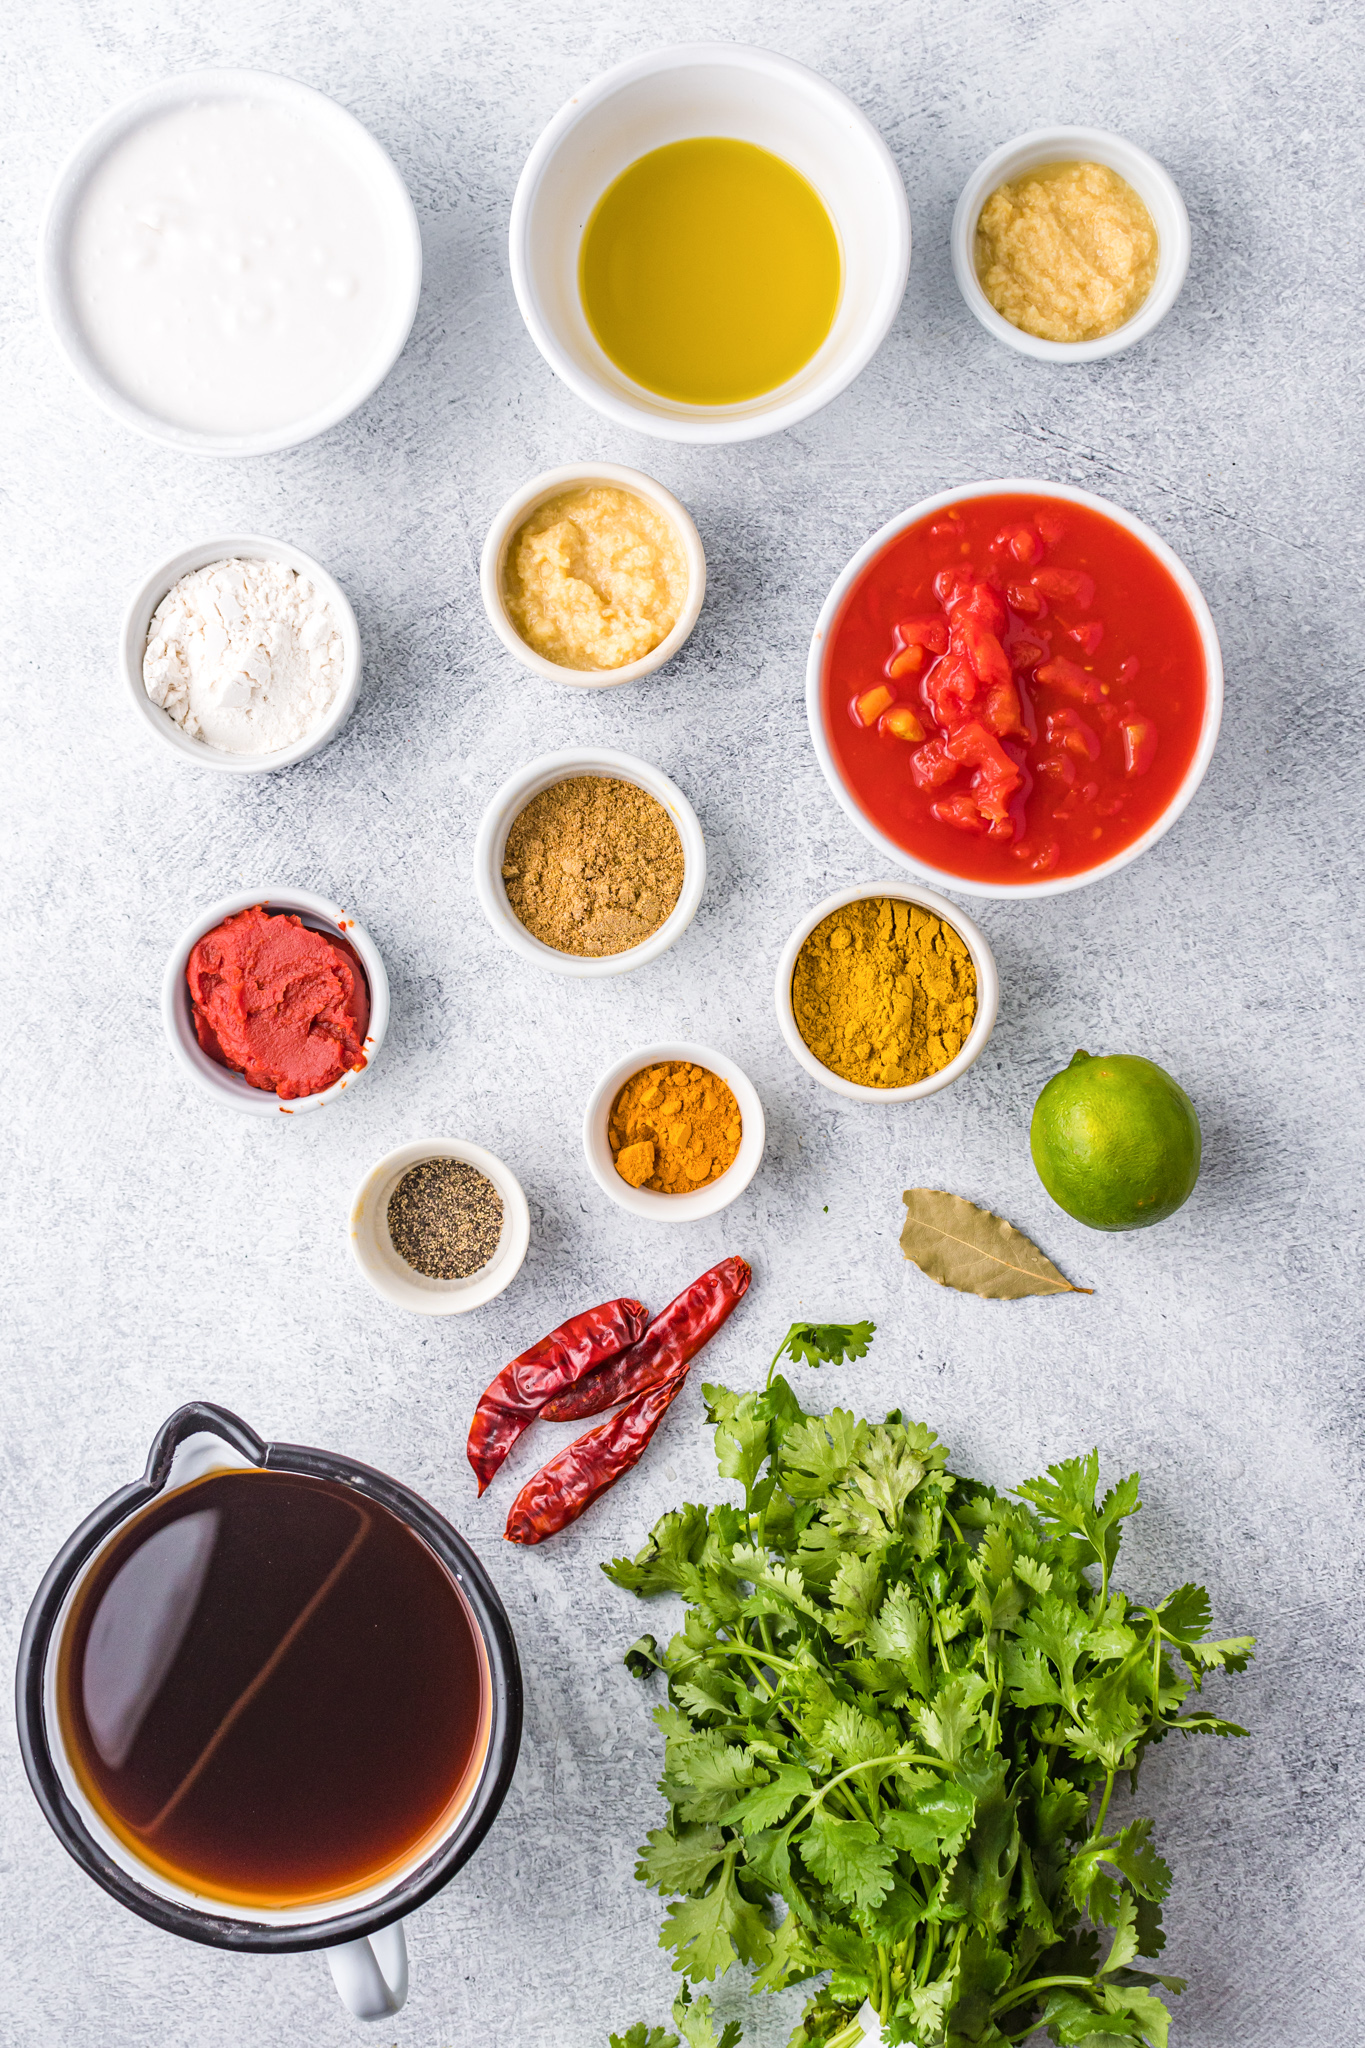 Curry Meatballs Recipe ingredients.